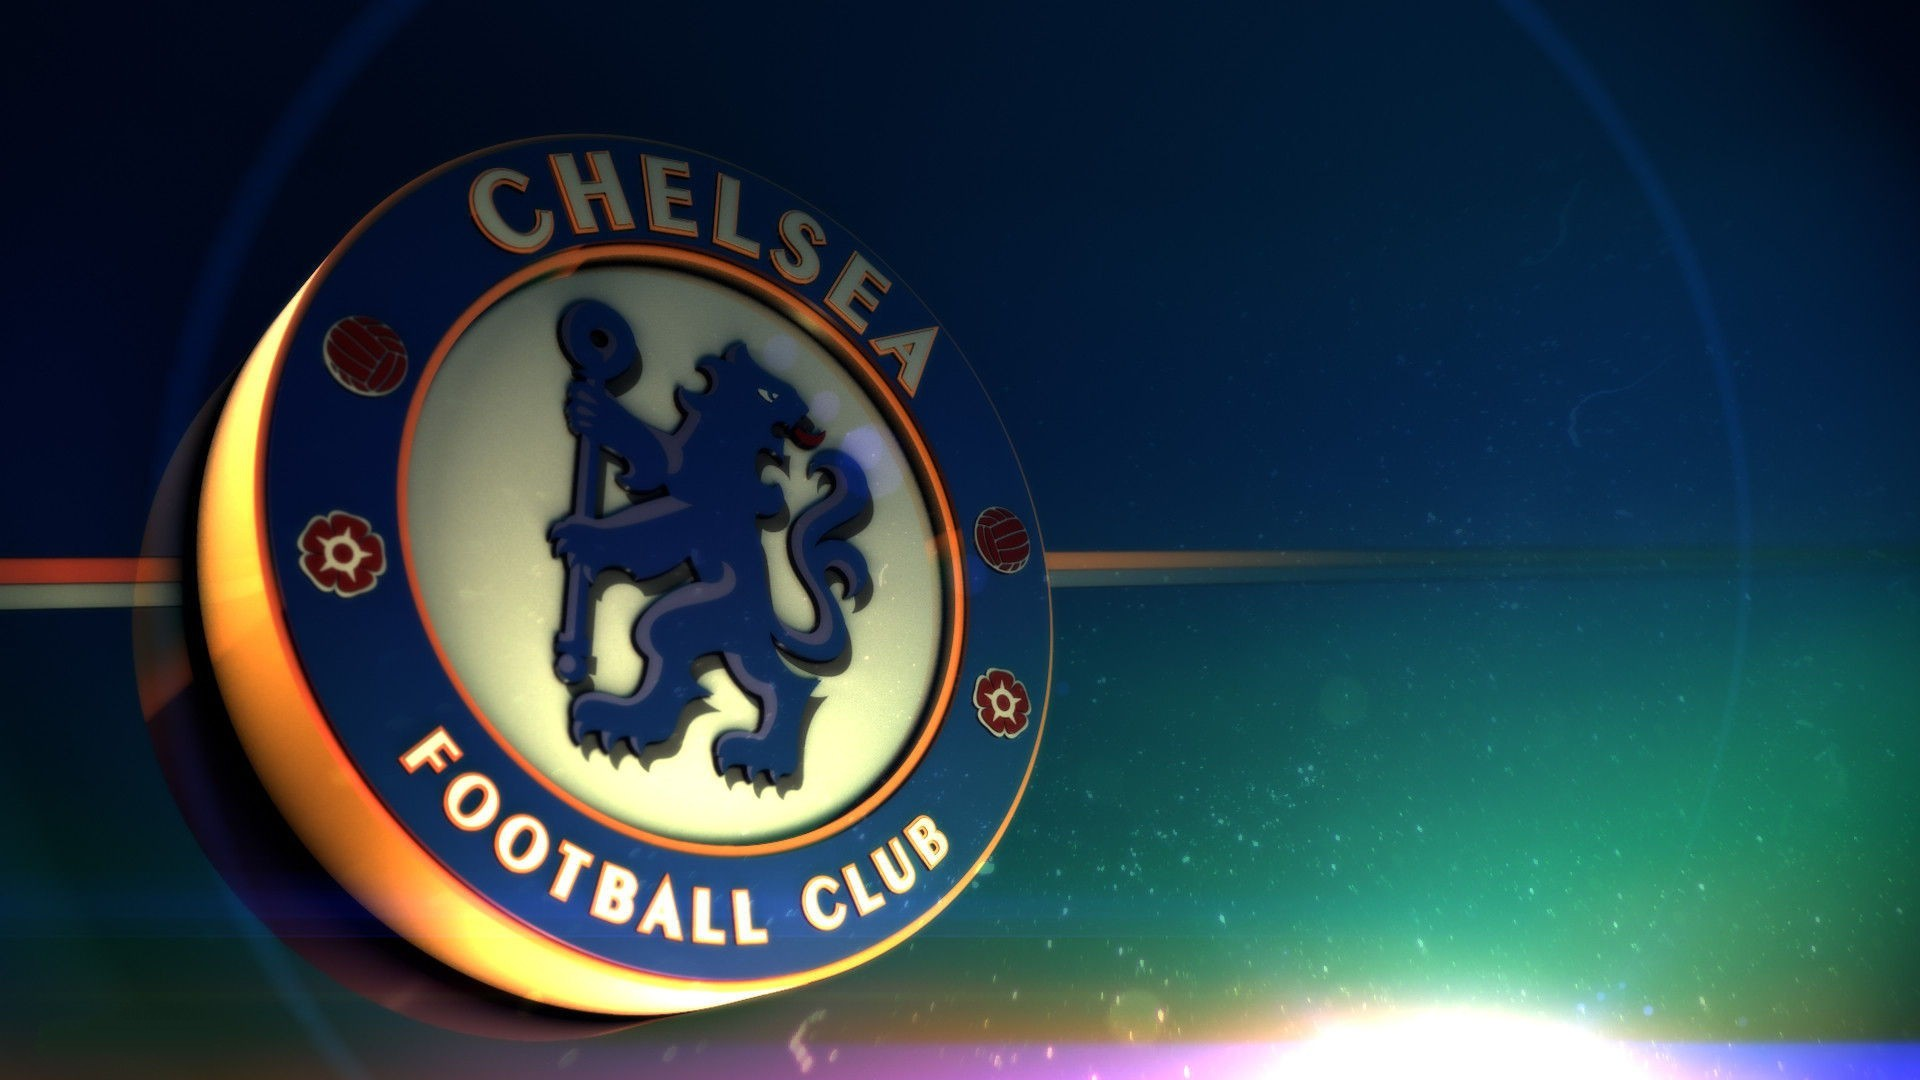 Chelsea HD Wallpapers 1080p 75 images 1920x1080